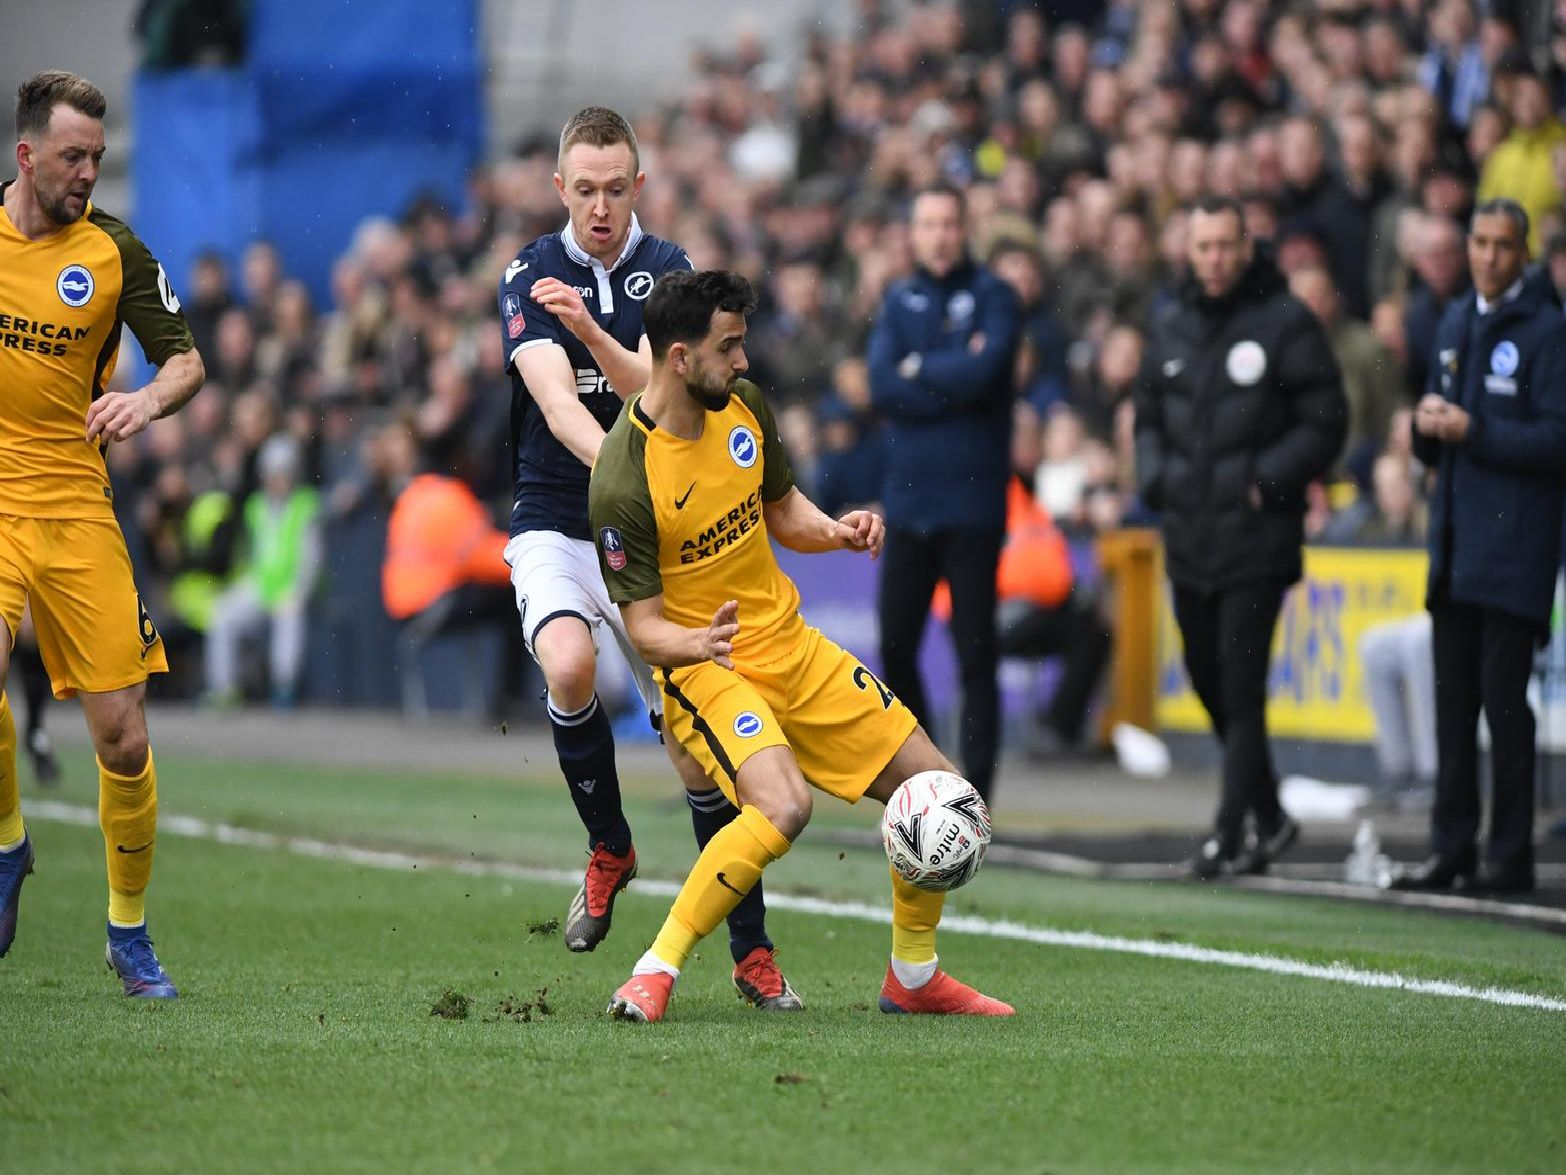 Action from Brighton's FA Cup quarter-final at Millwall. Picture by PW Sporting Photography